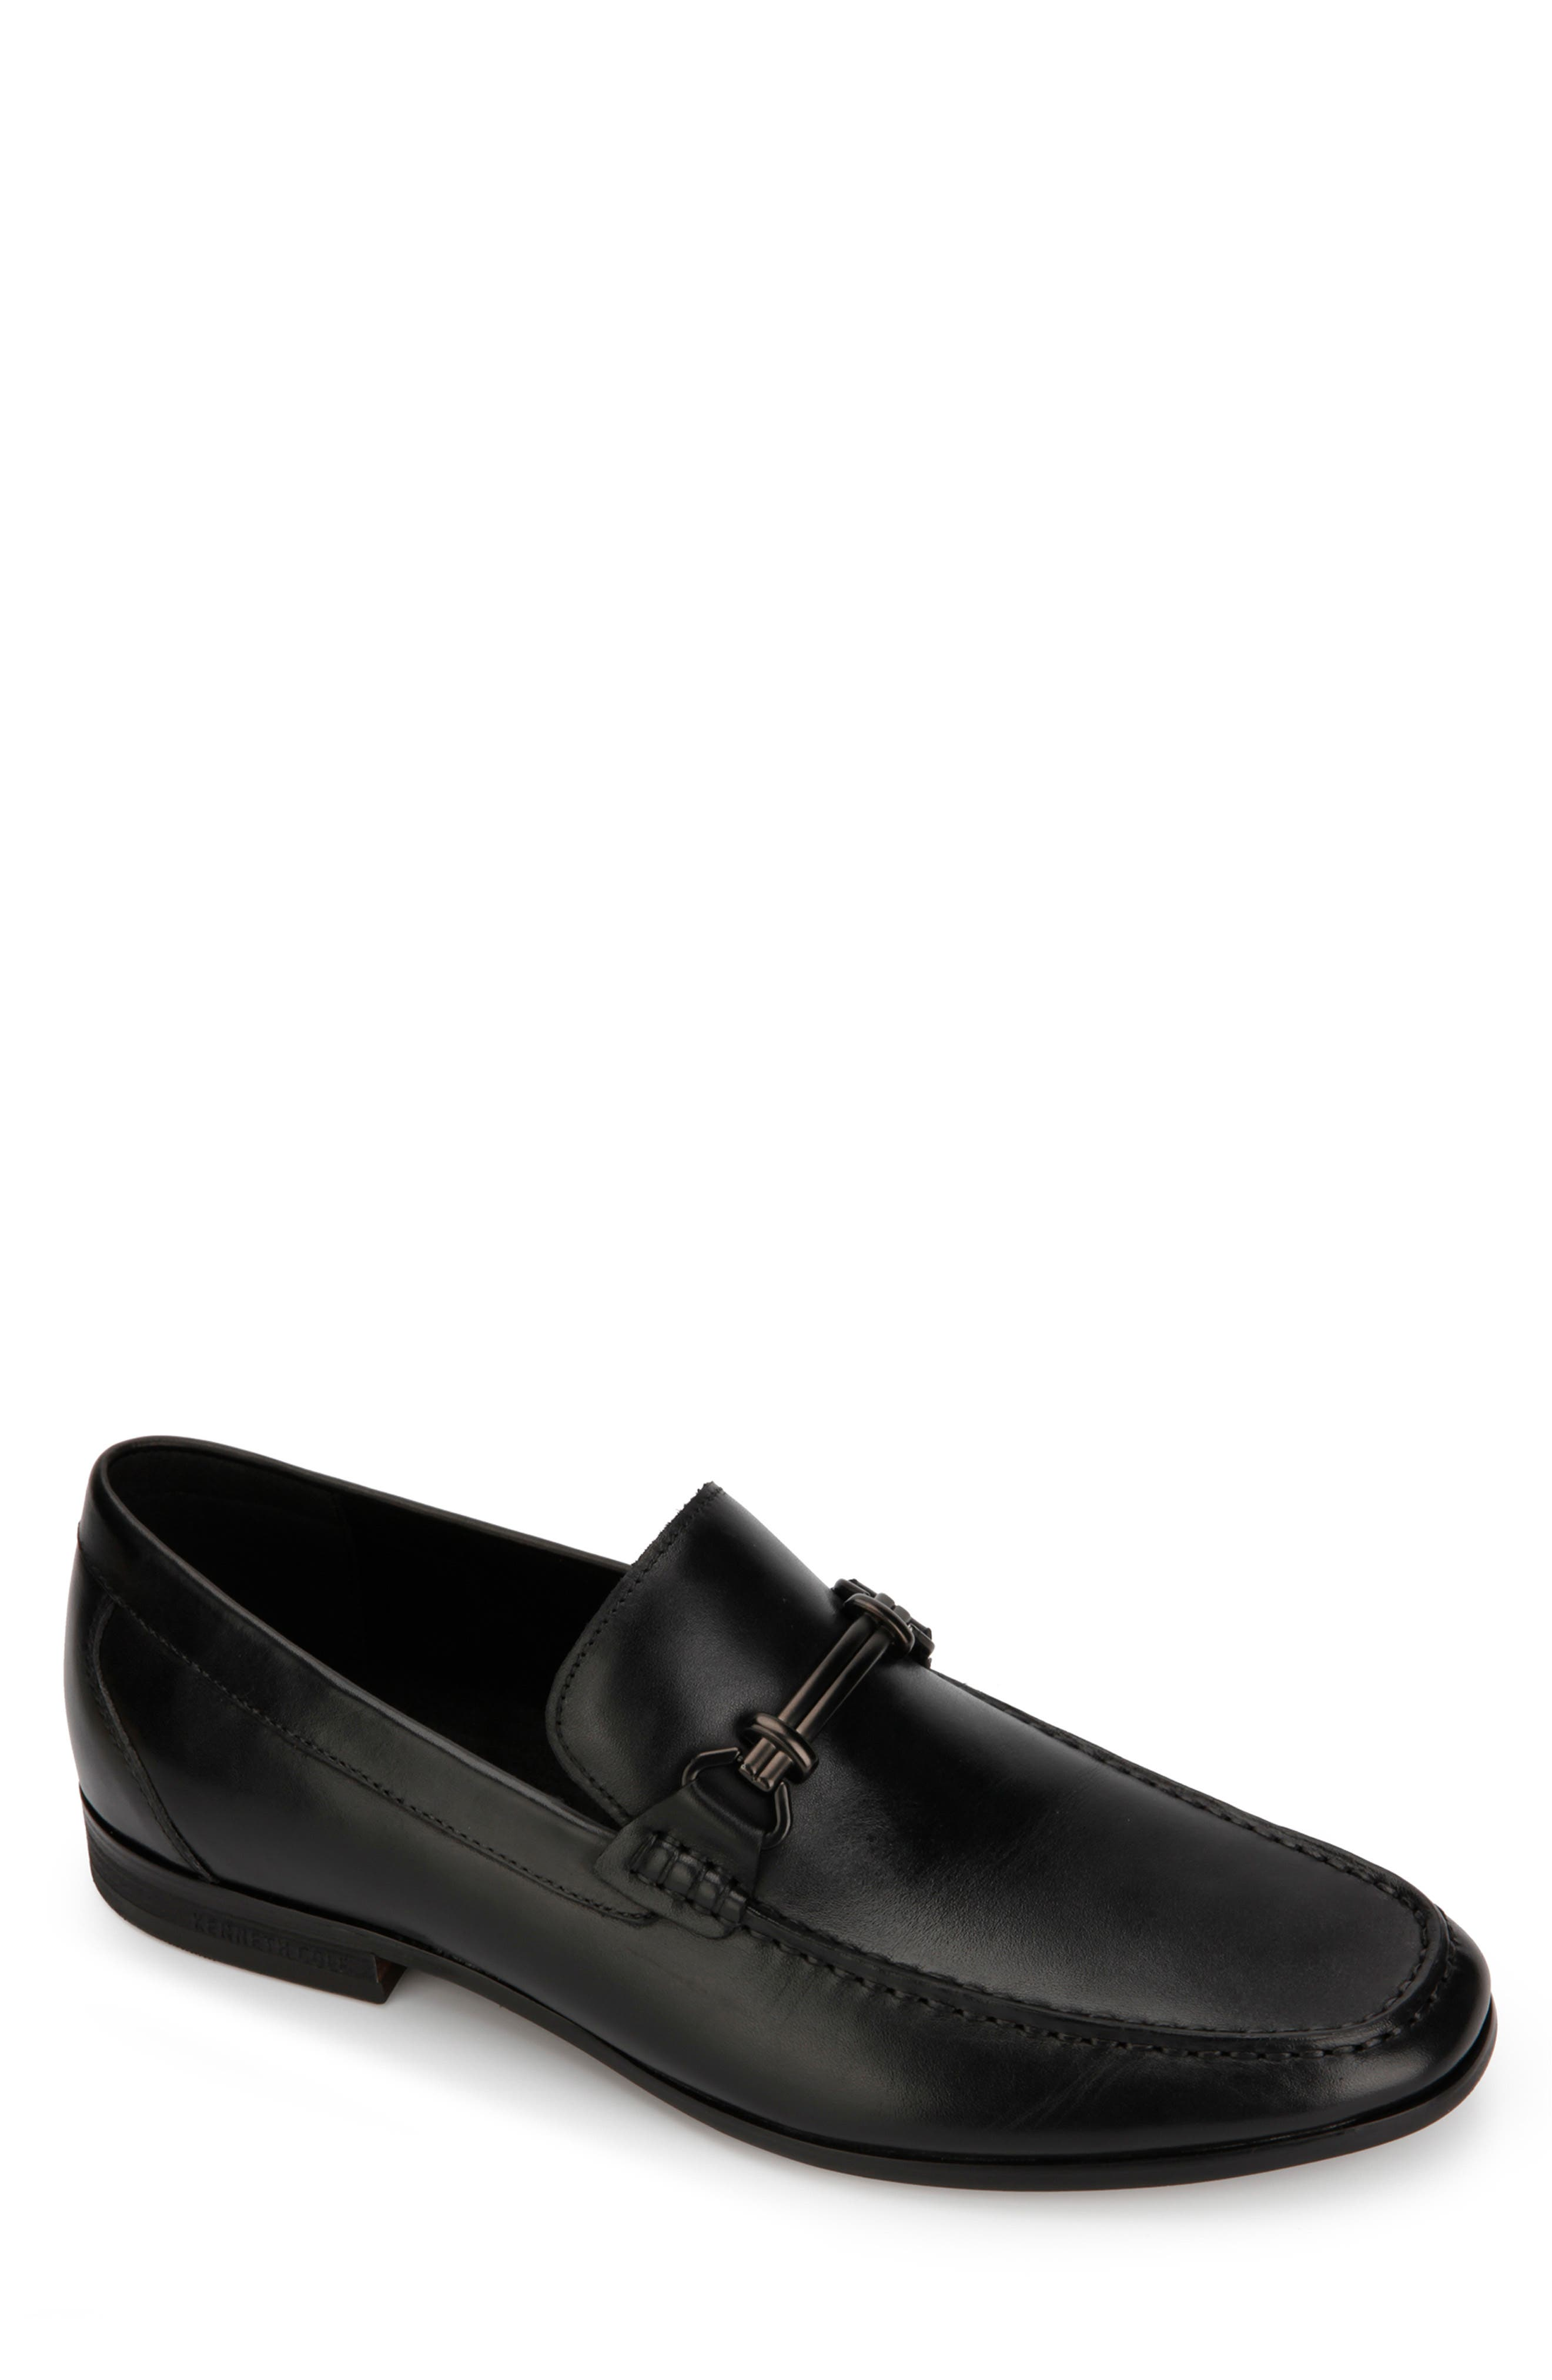 KENNETH COLE NEW YORK, Arlie Bit Loafer, Main thumbnail 1, color, 001